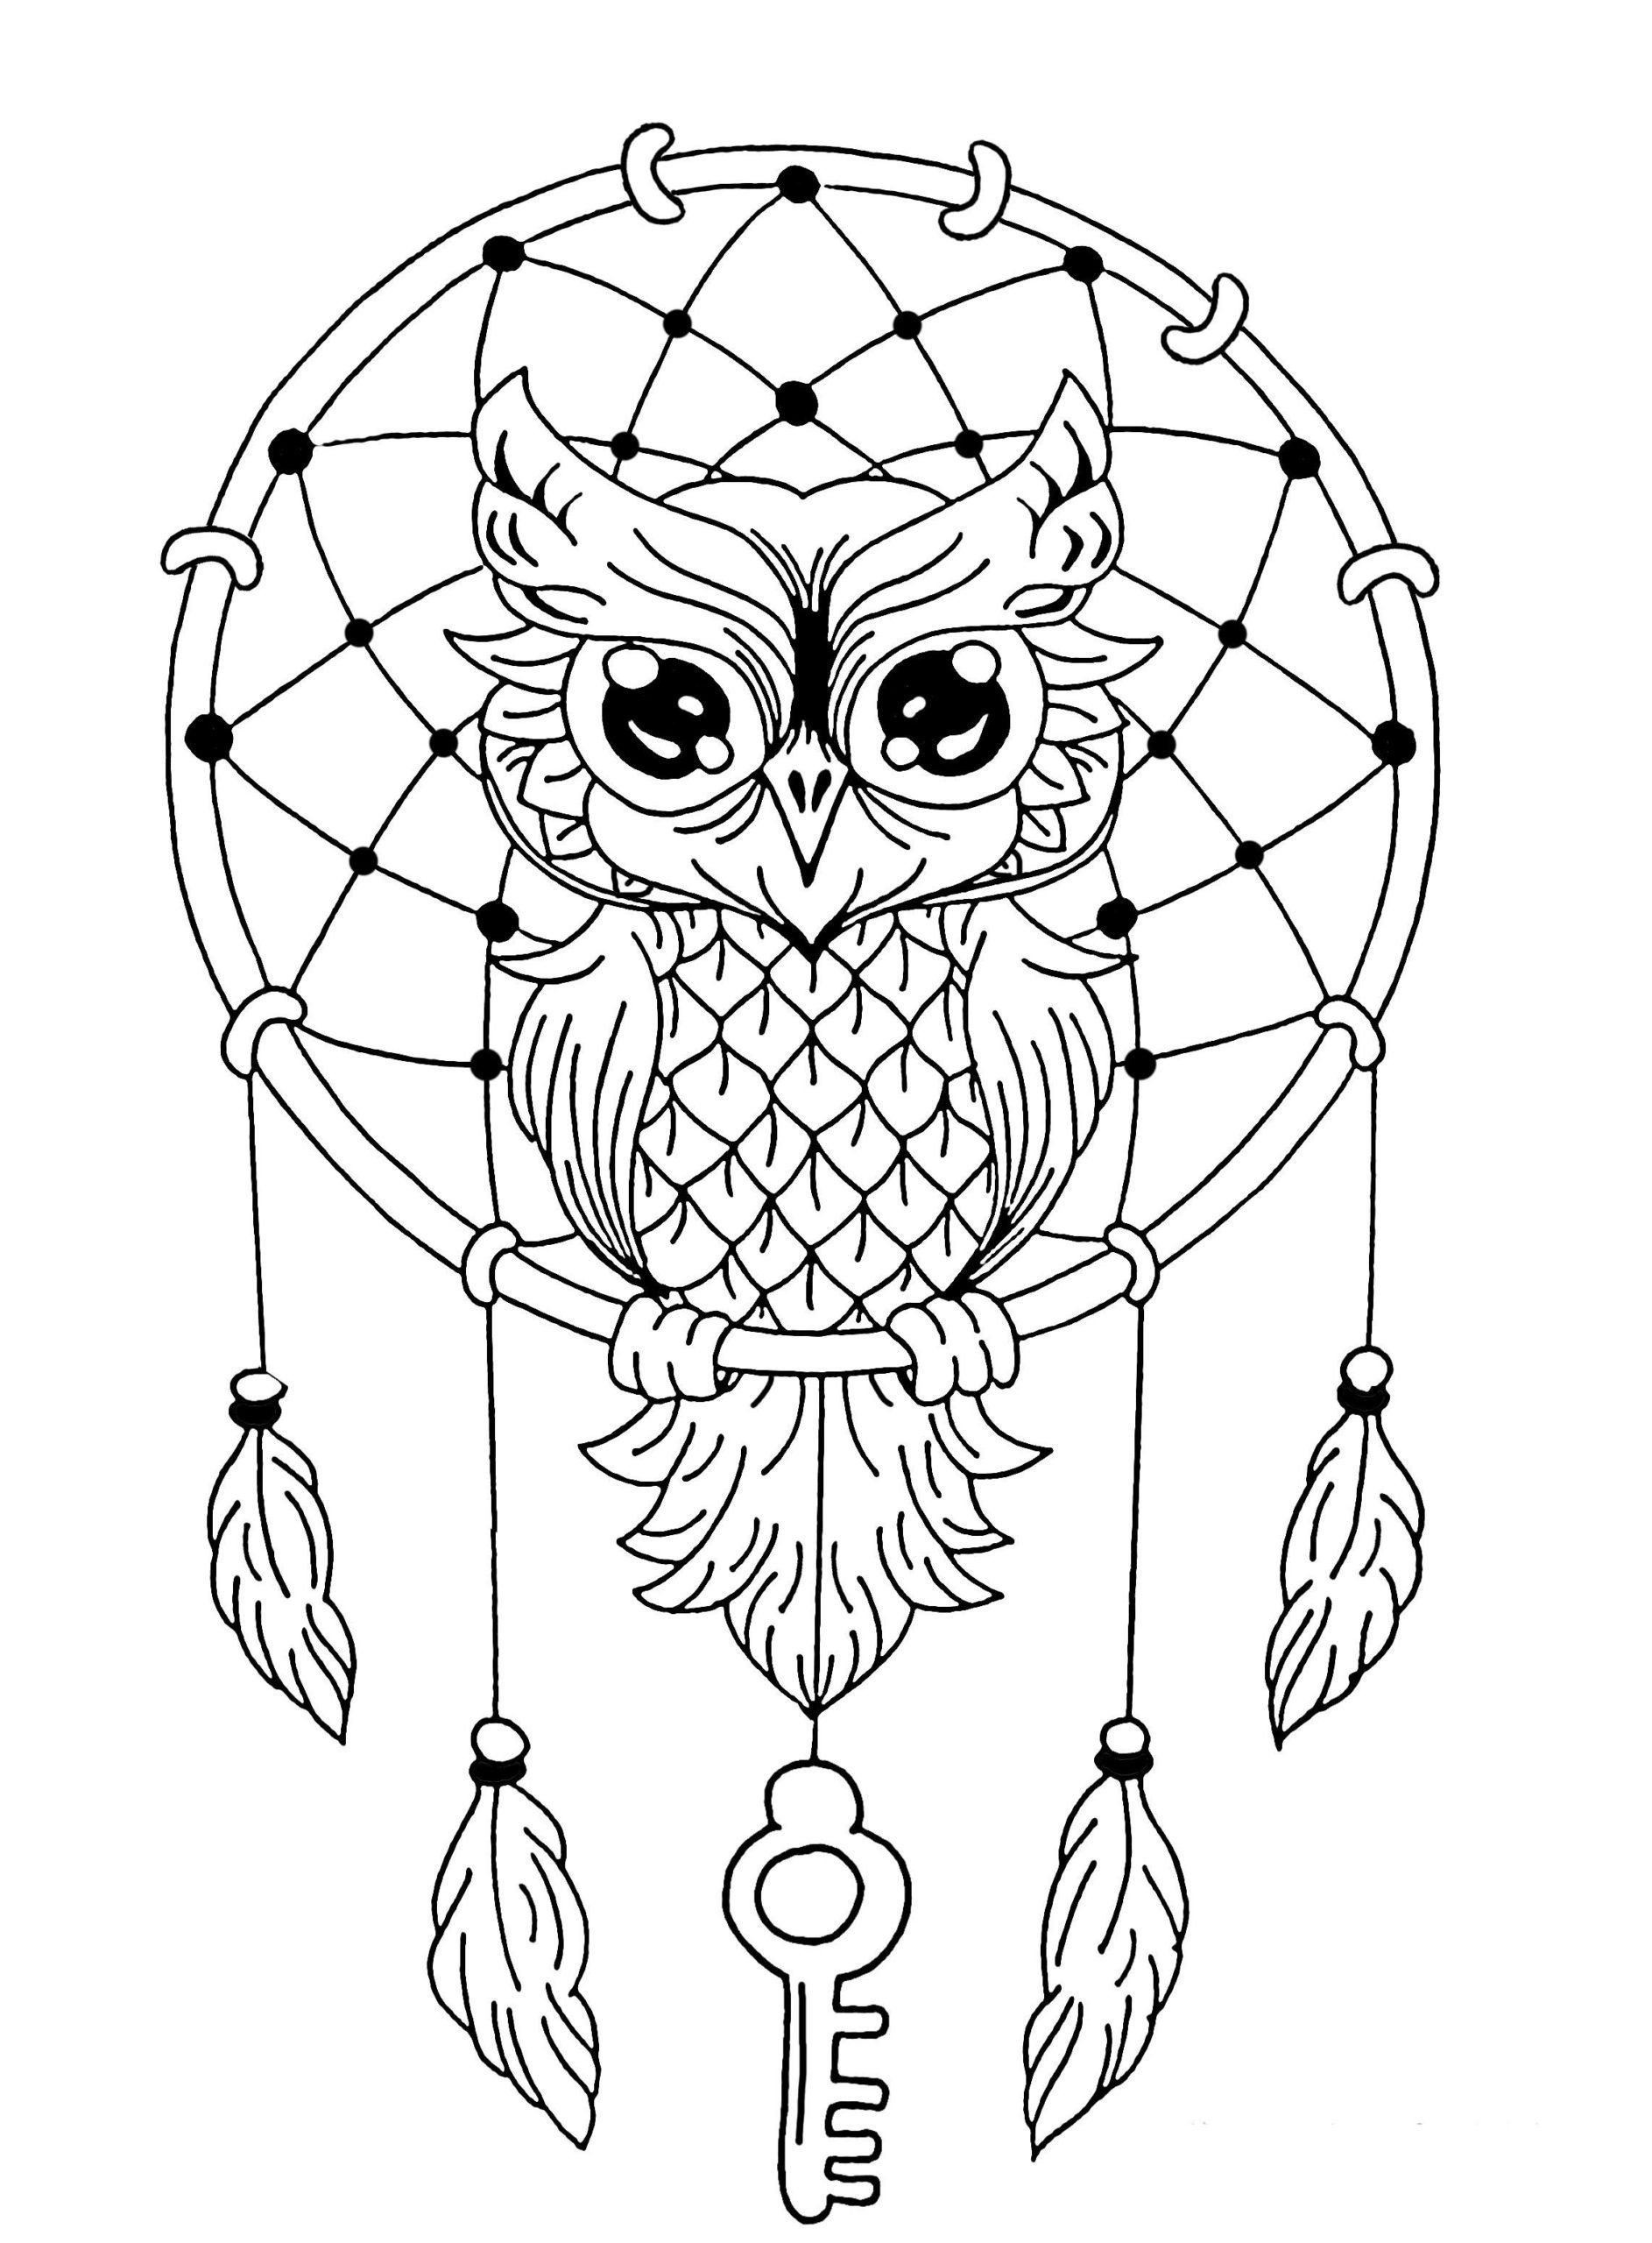 Pretty Mandala Coloring Pages Coloring Pages Coloring Owl Coloringts Mandalag For Kids In 2020 Owl Coloring Pages Cute Coloring Pages Dream Catcher Coloring Pages